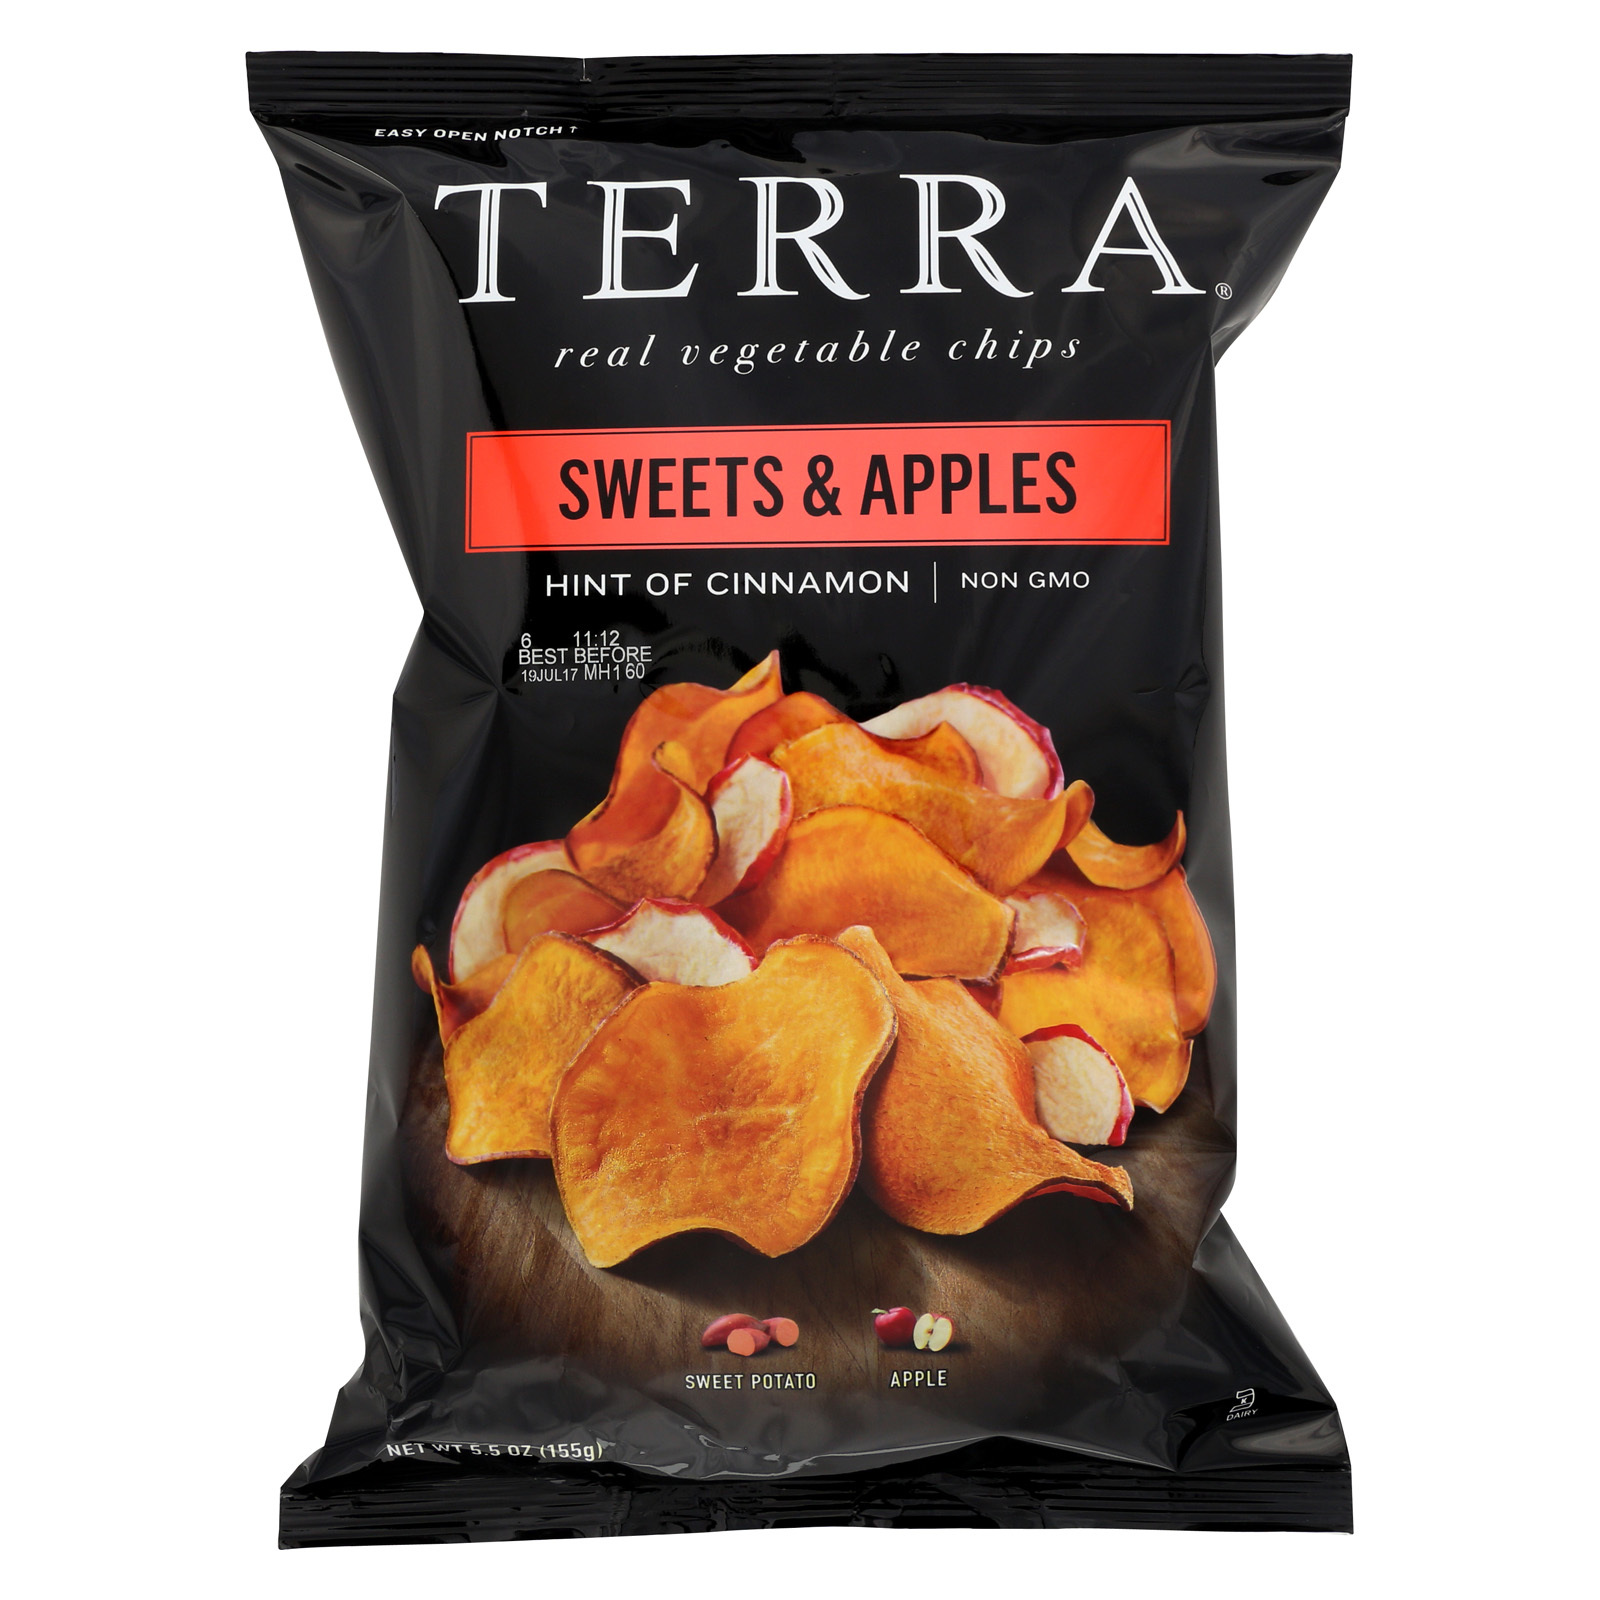 Terra Chips Sweet Potato Chips - Sweets and Apples - Case of 12 - 5.5 oz.